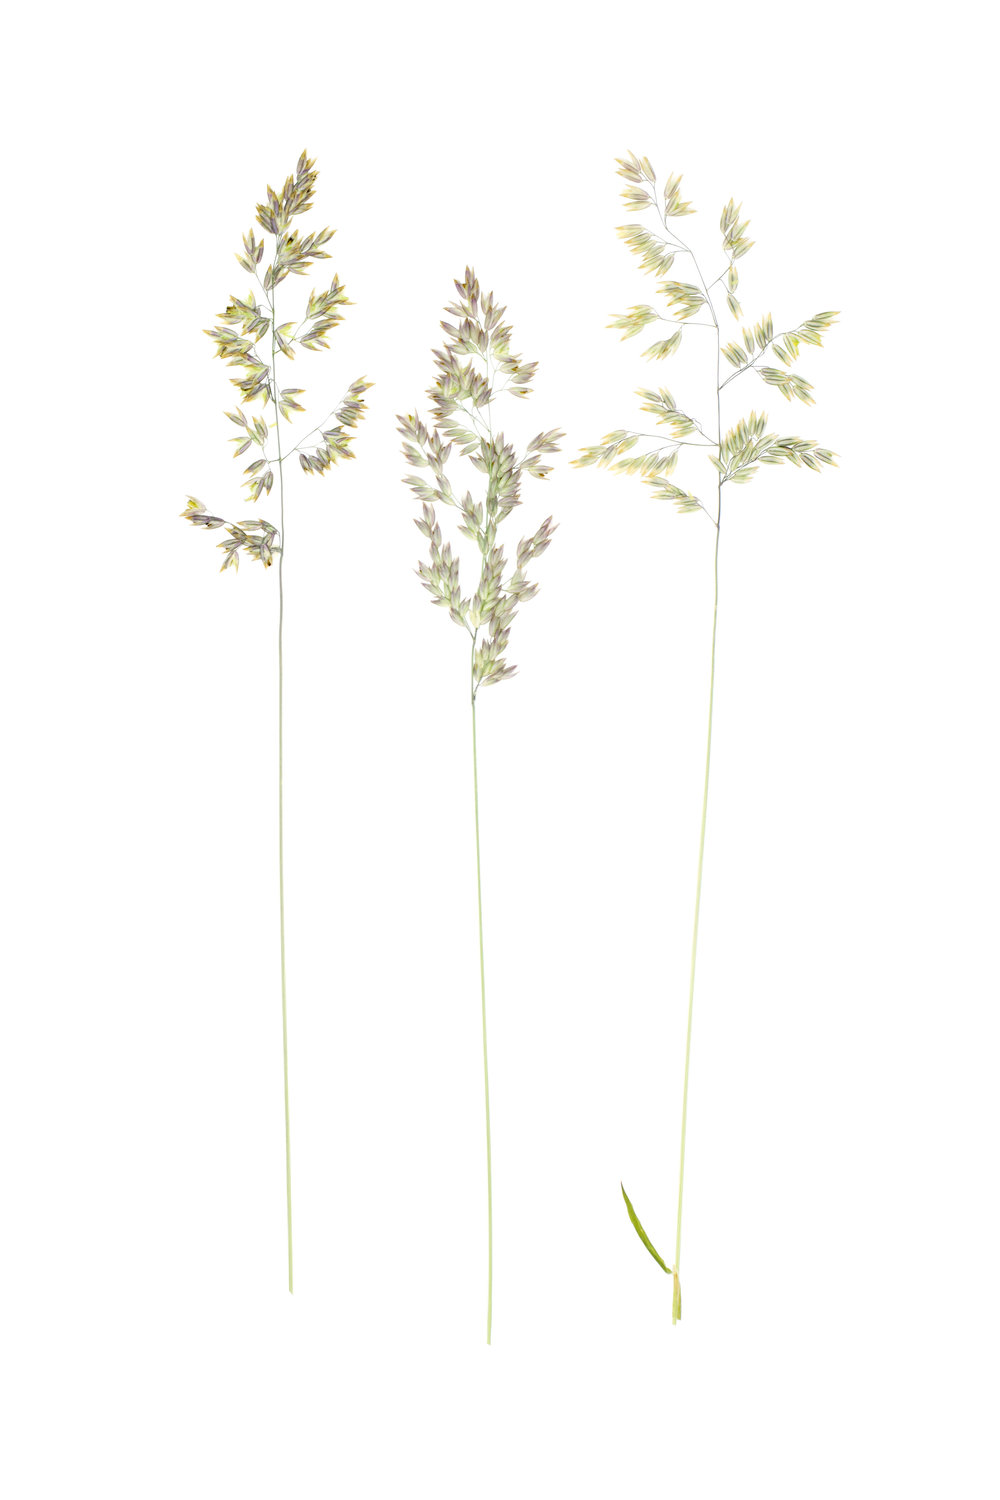 New! Velvet Grass or Yorkshire Fog / Holcus lanatus